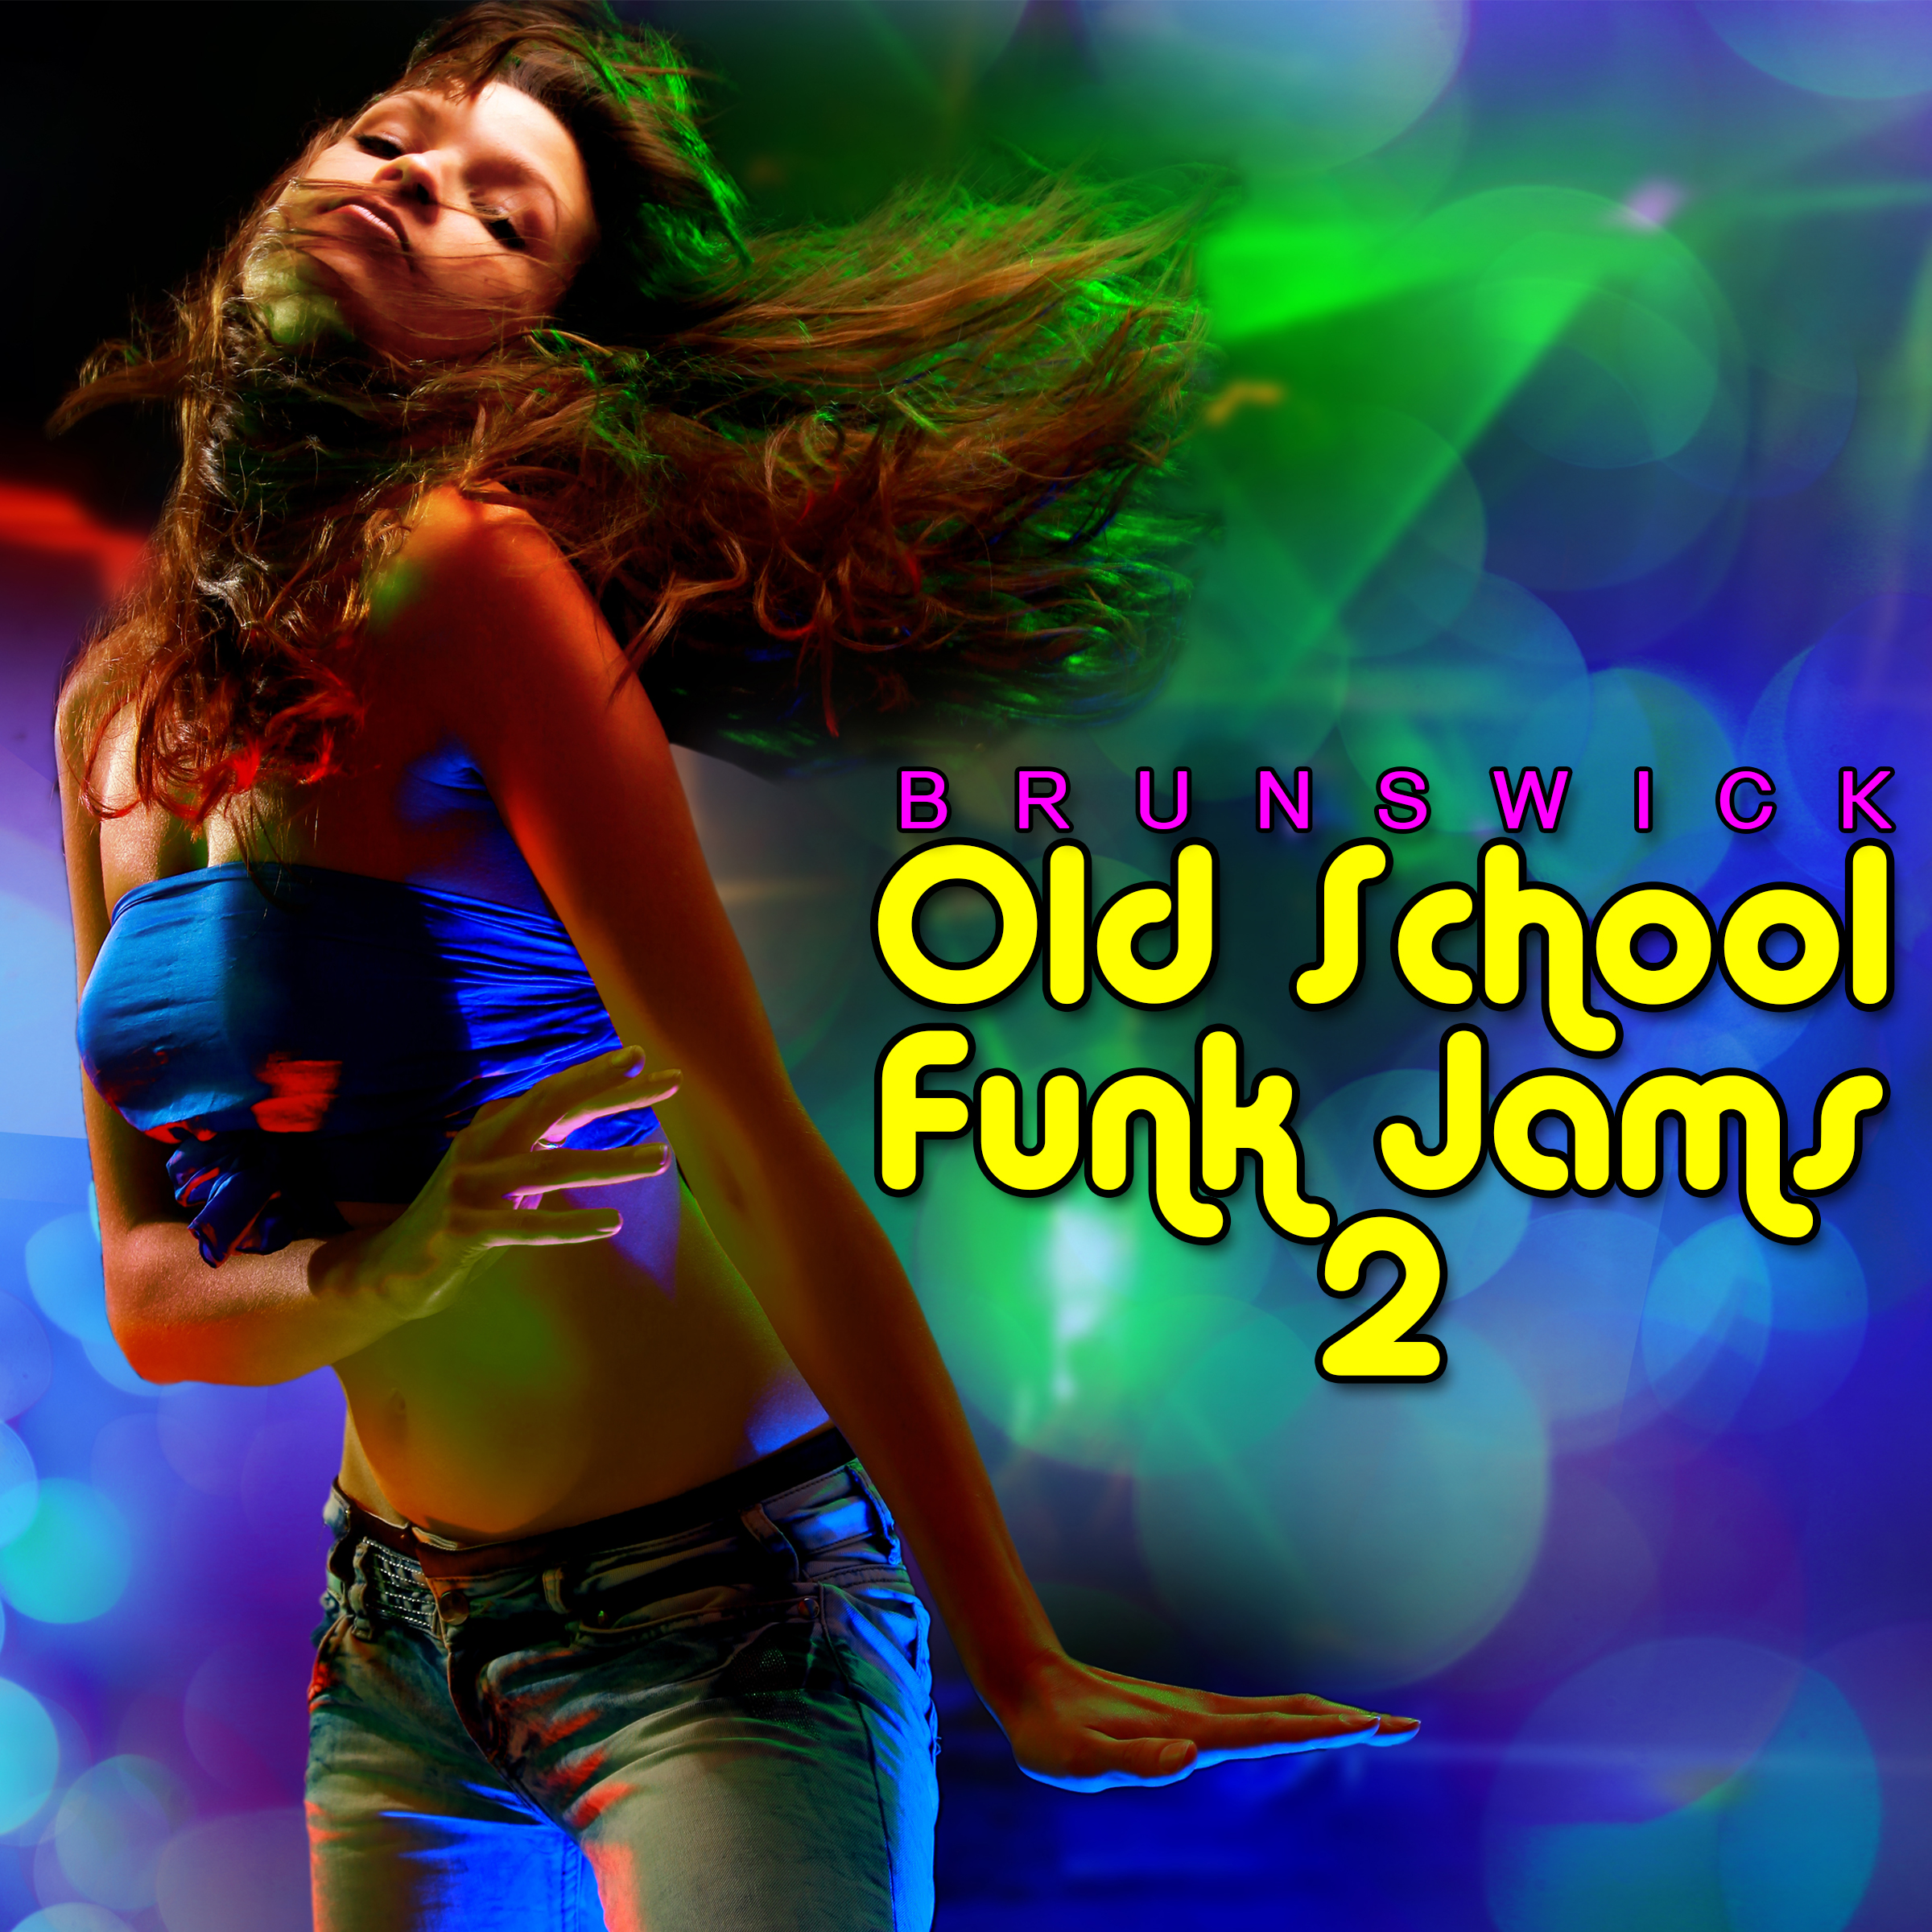 Old School Funk Jams 2